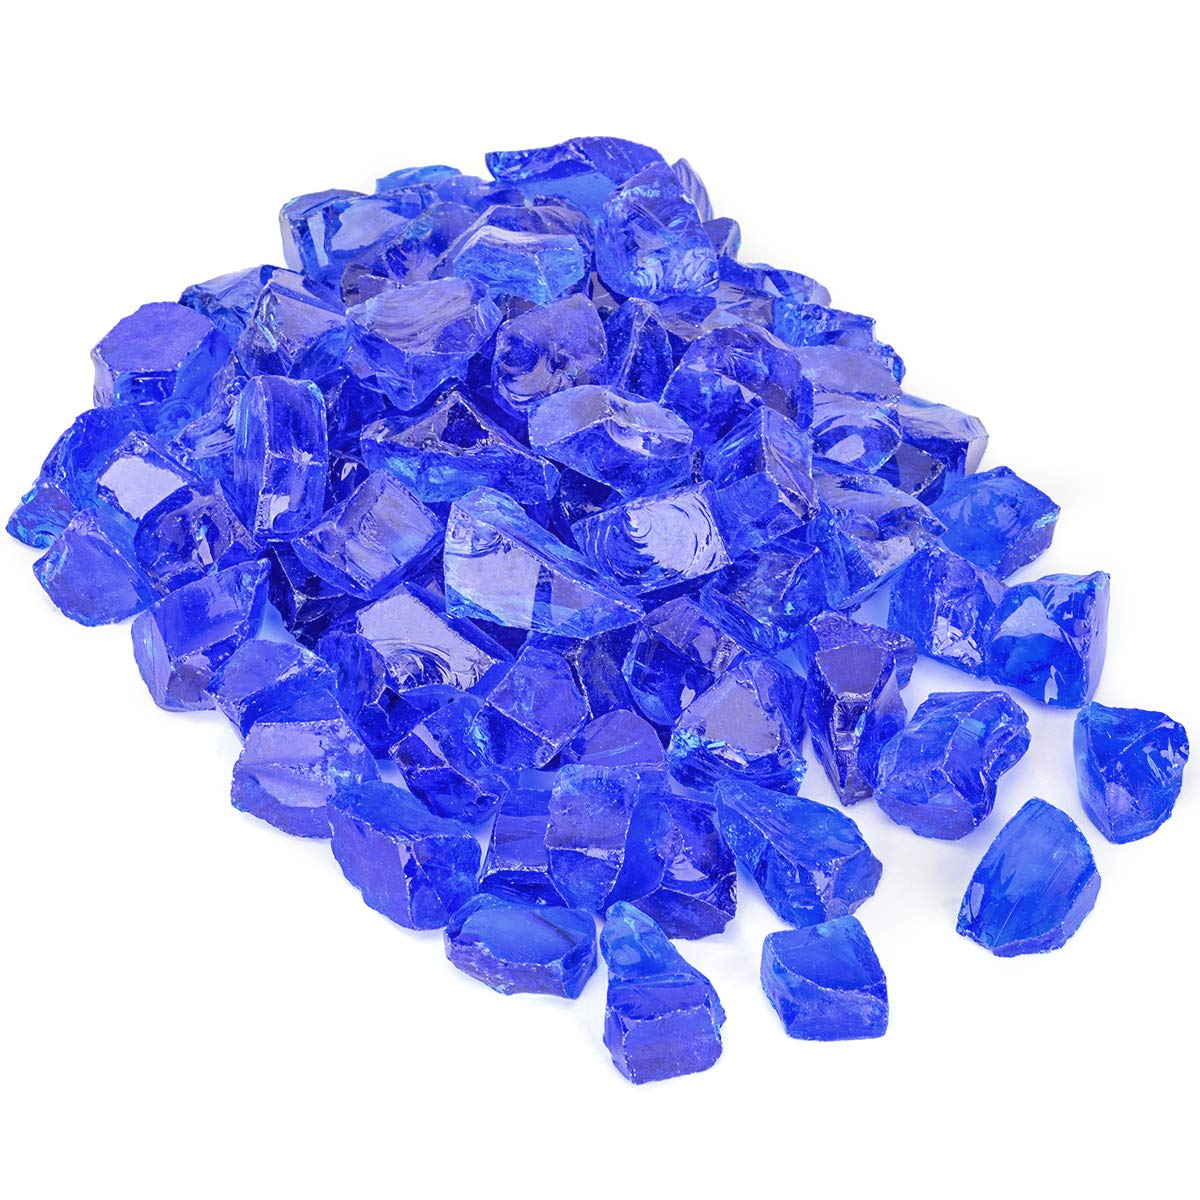 Mr. Fireglass Recycled Fire Glass for Natural or Propane Fire Pit Fireplace Gas Log Sets, 10 Pounds, Cobalt Blue